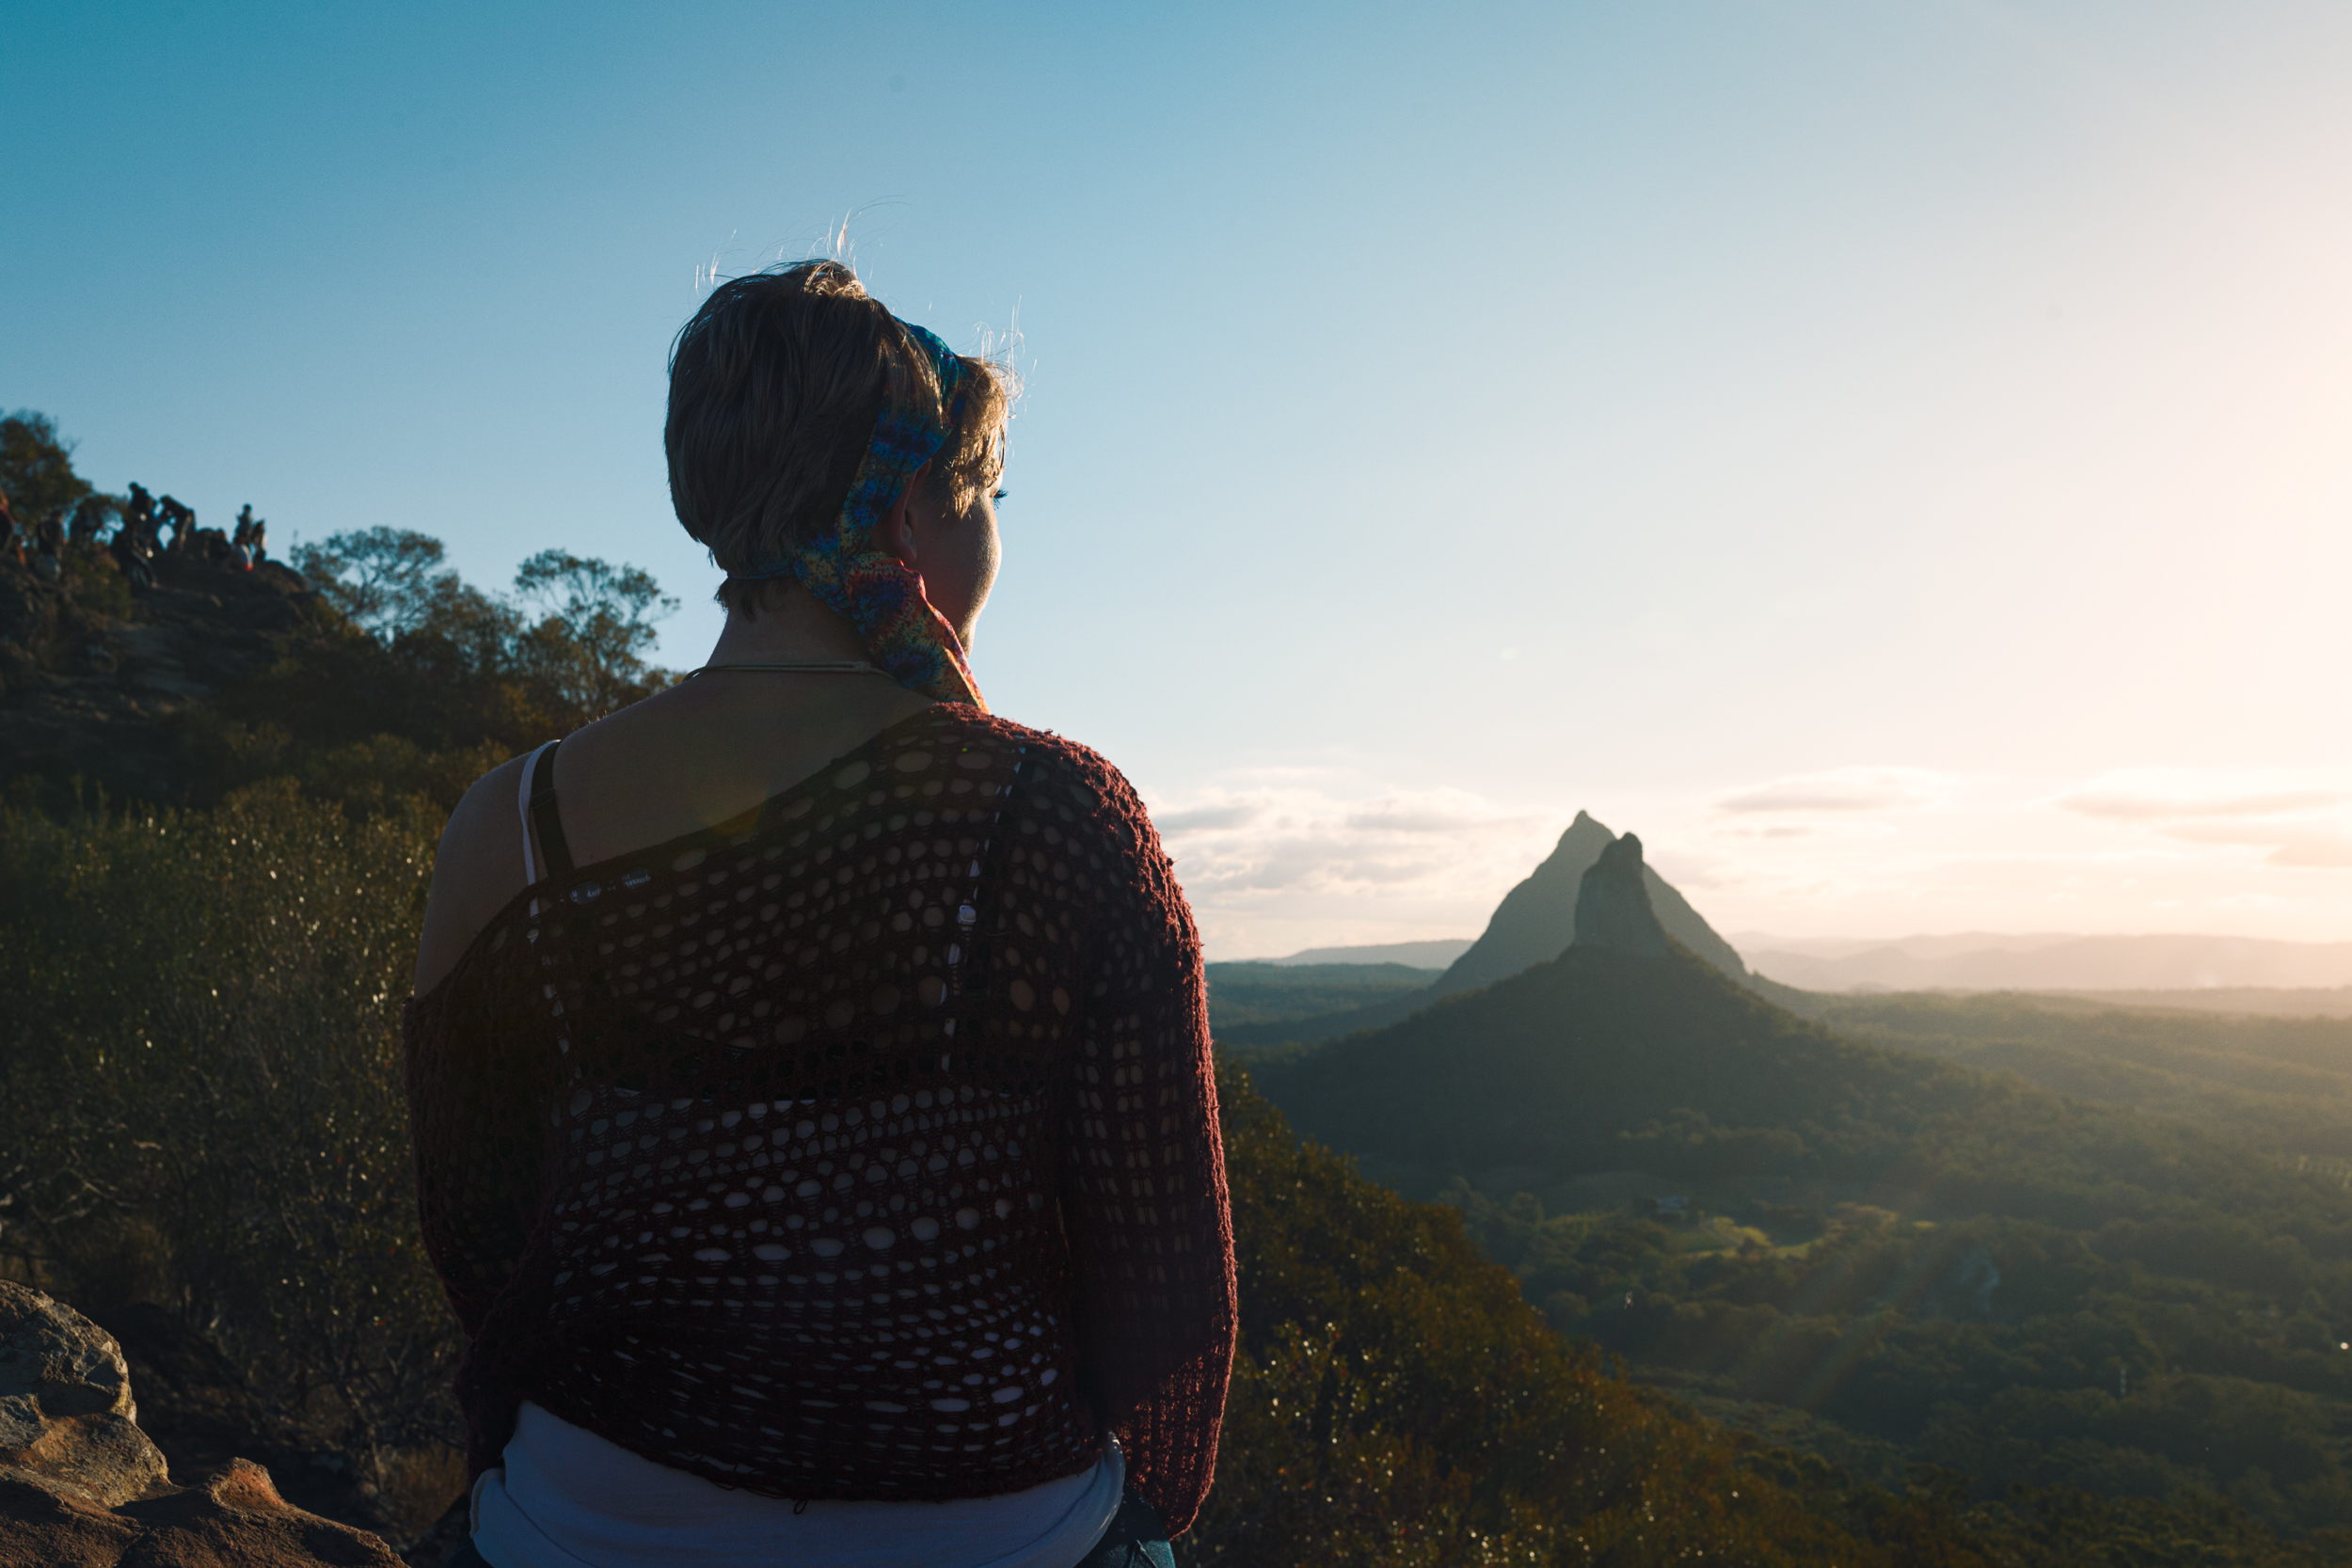 From the summit of Mount Ngungun, overlooking Mount Coonowrin and Mount Beerwah in the distance.